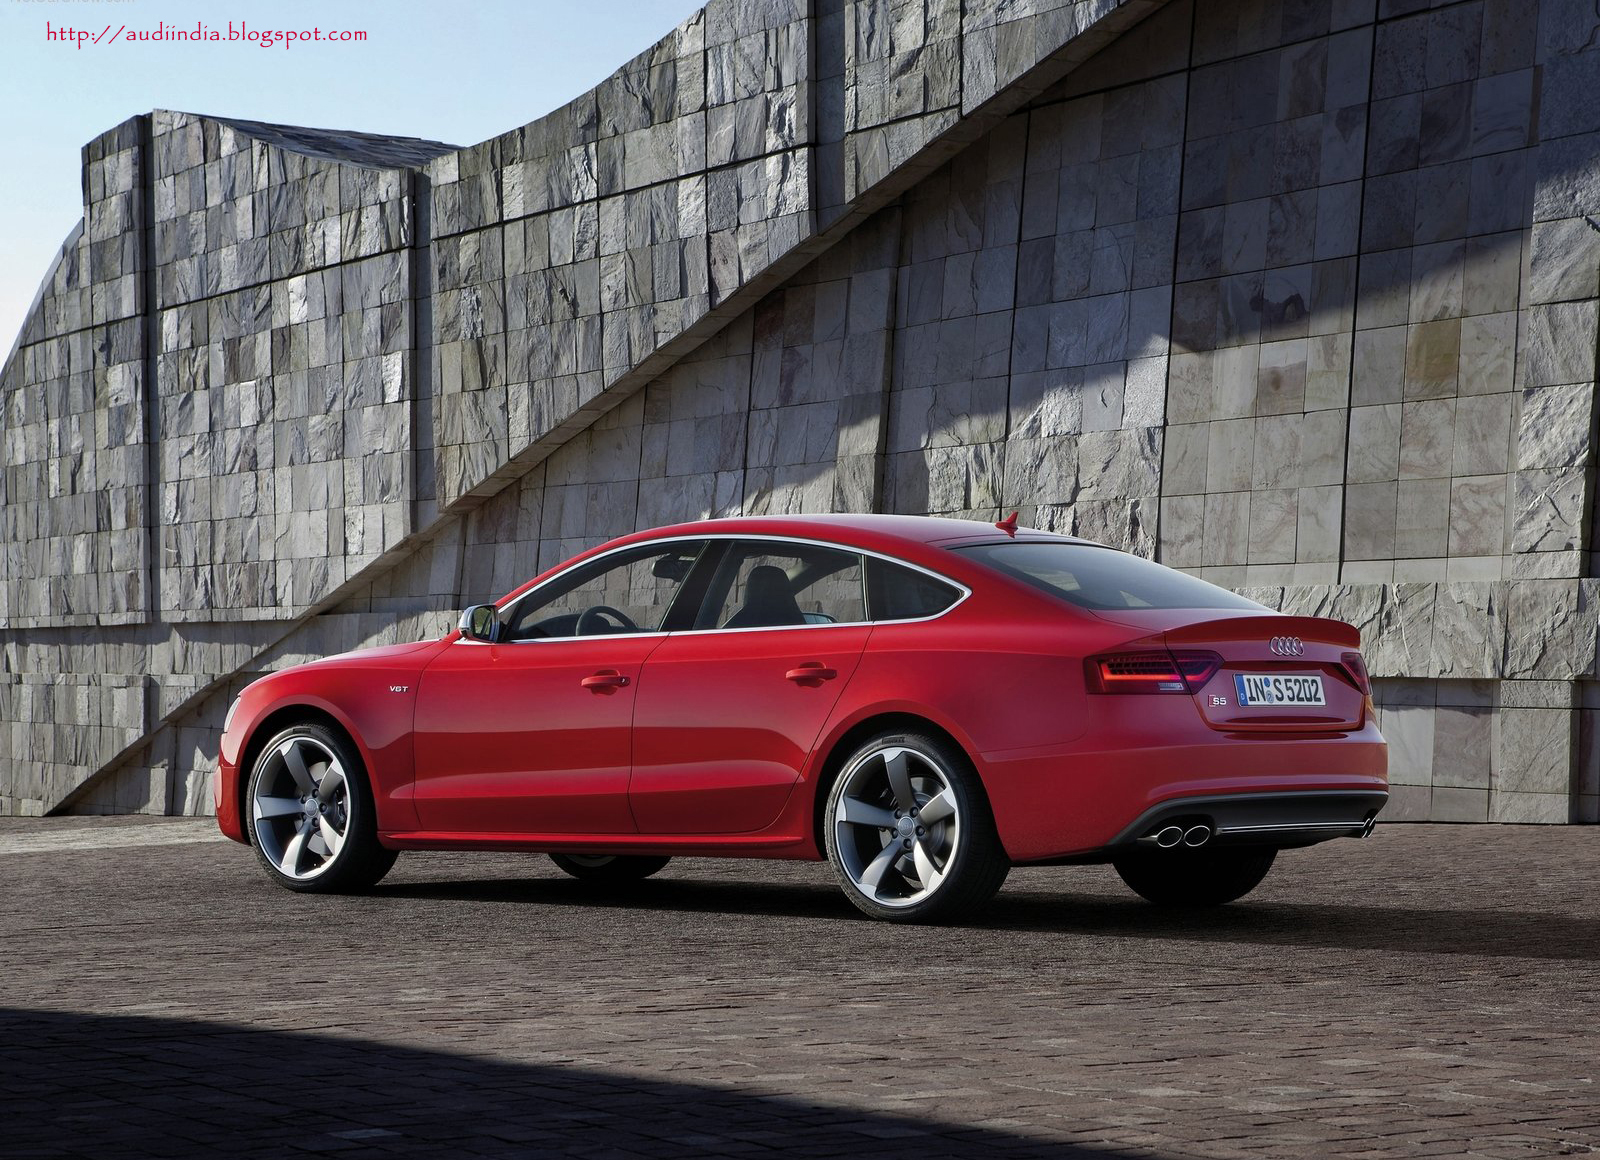 2012 Audi S5 Sportback Wallpapers The World Of Audi